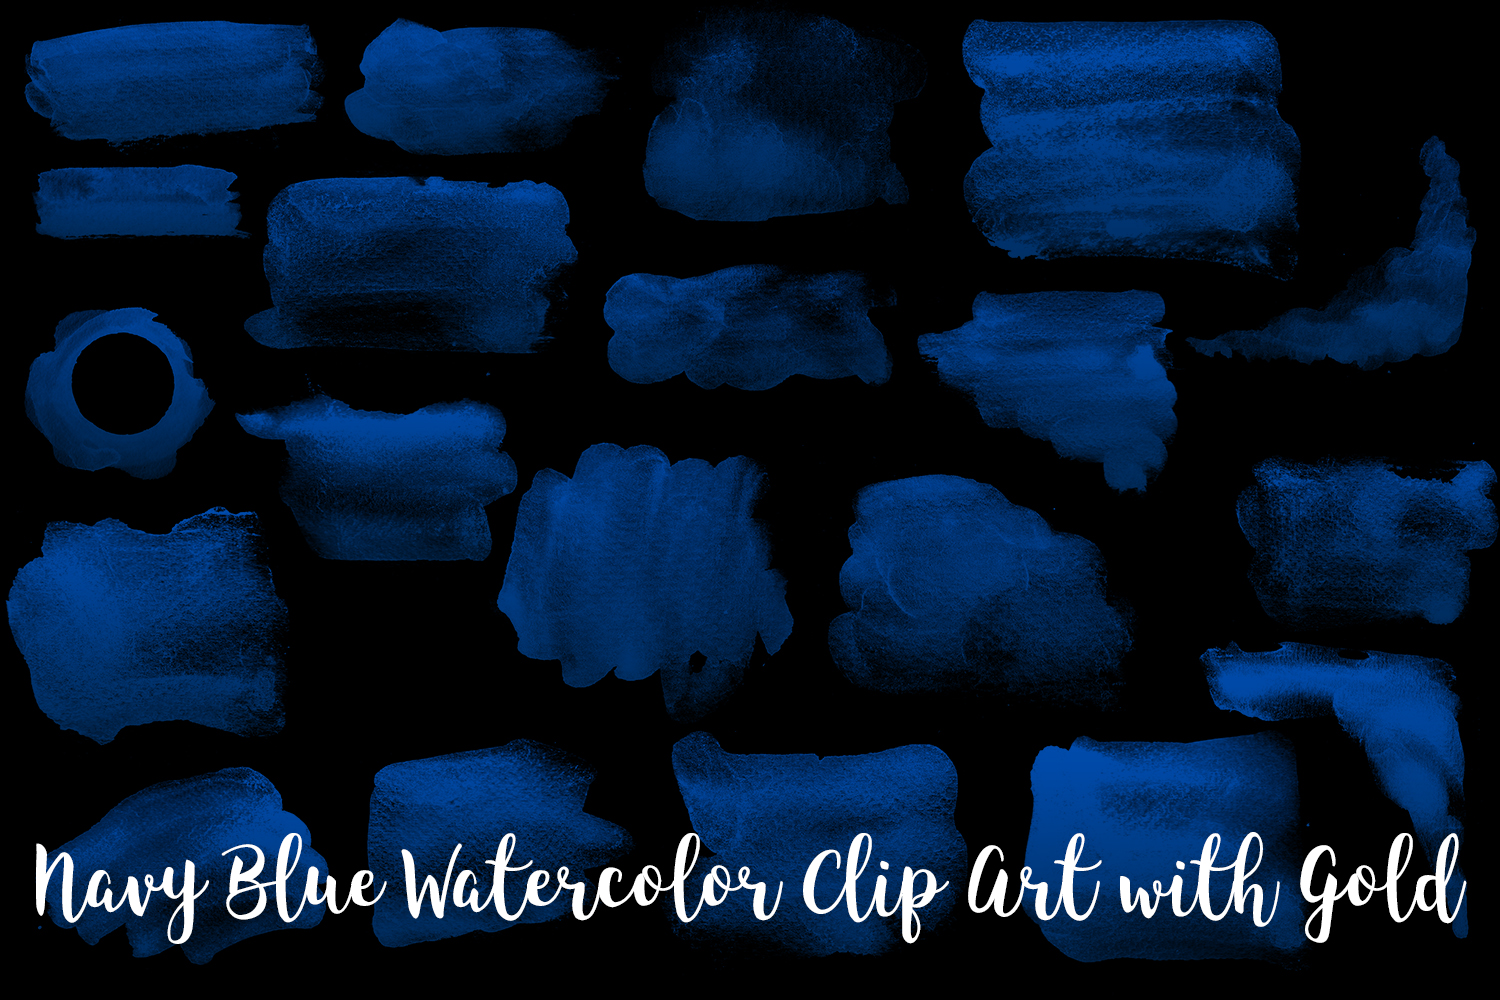 Navy Blue Watercolor Clip Art with Gold, Transparent PNG example image 2